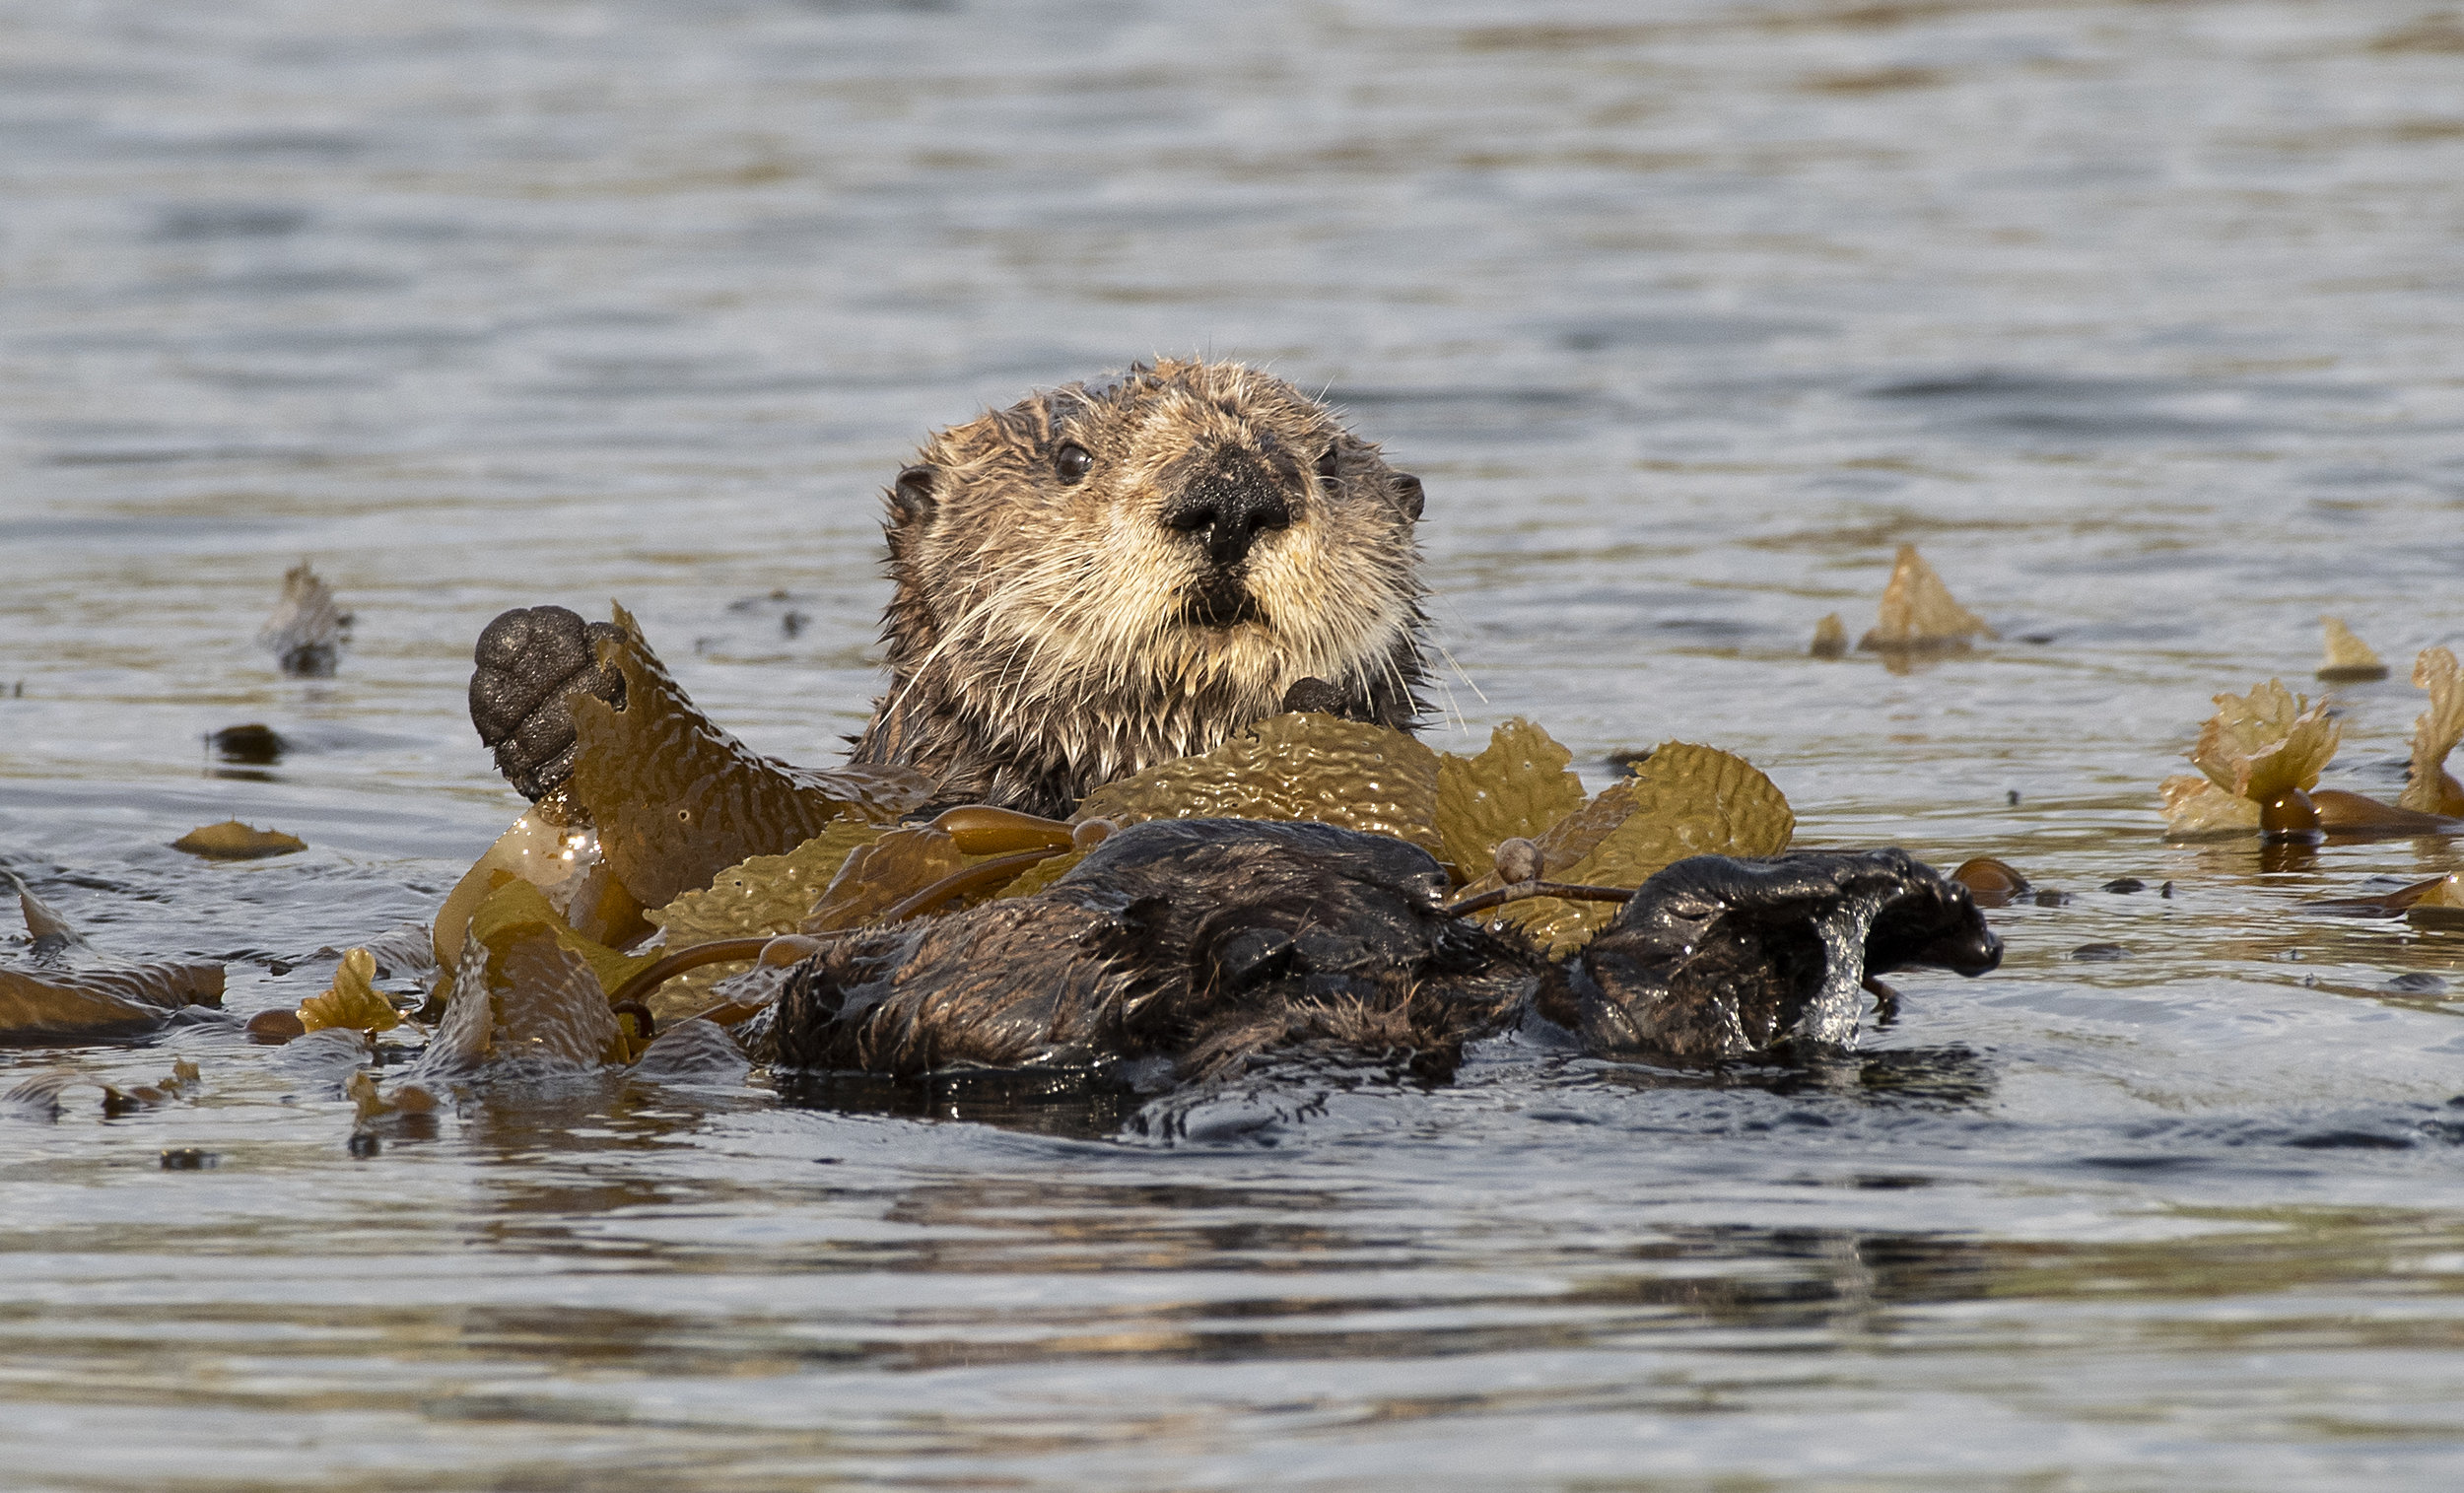 Sea Otter photography workshops